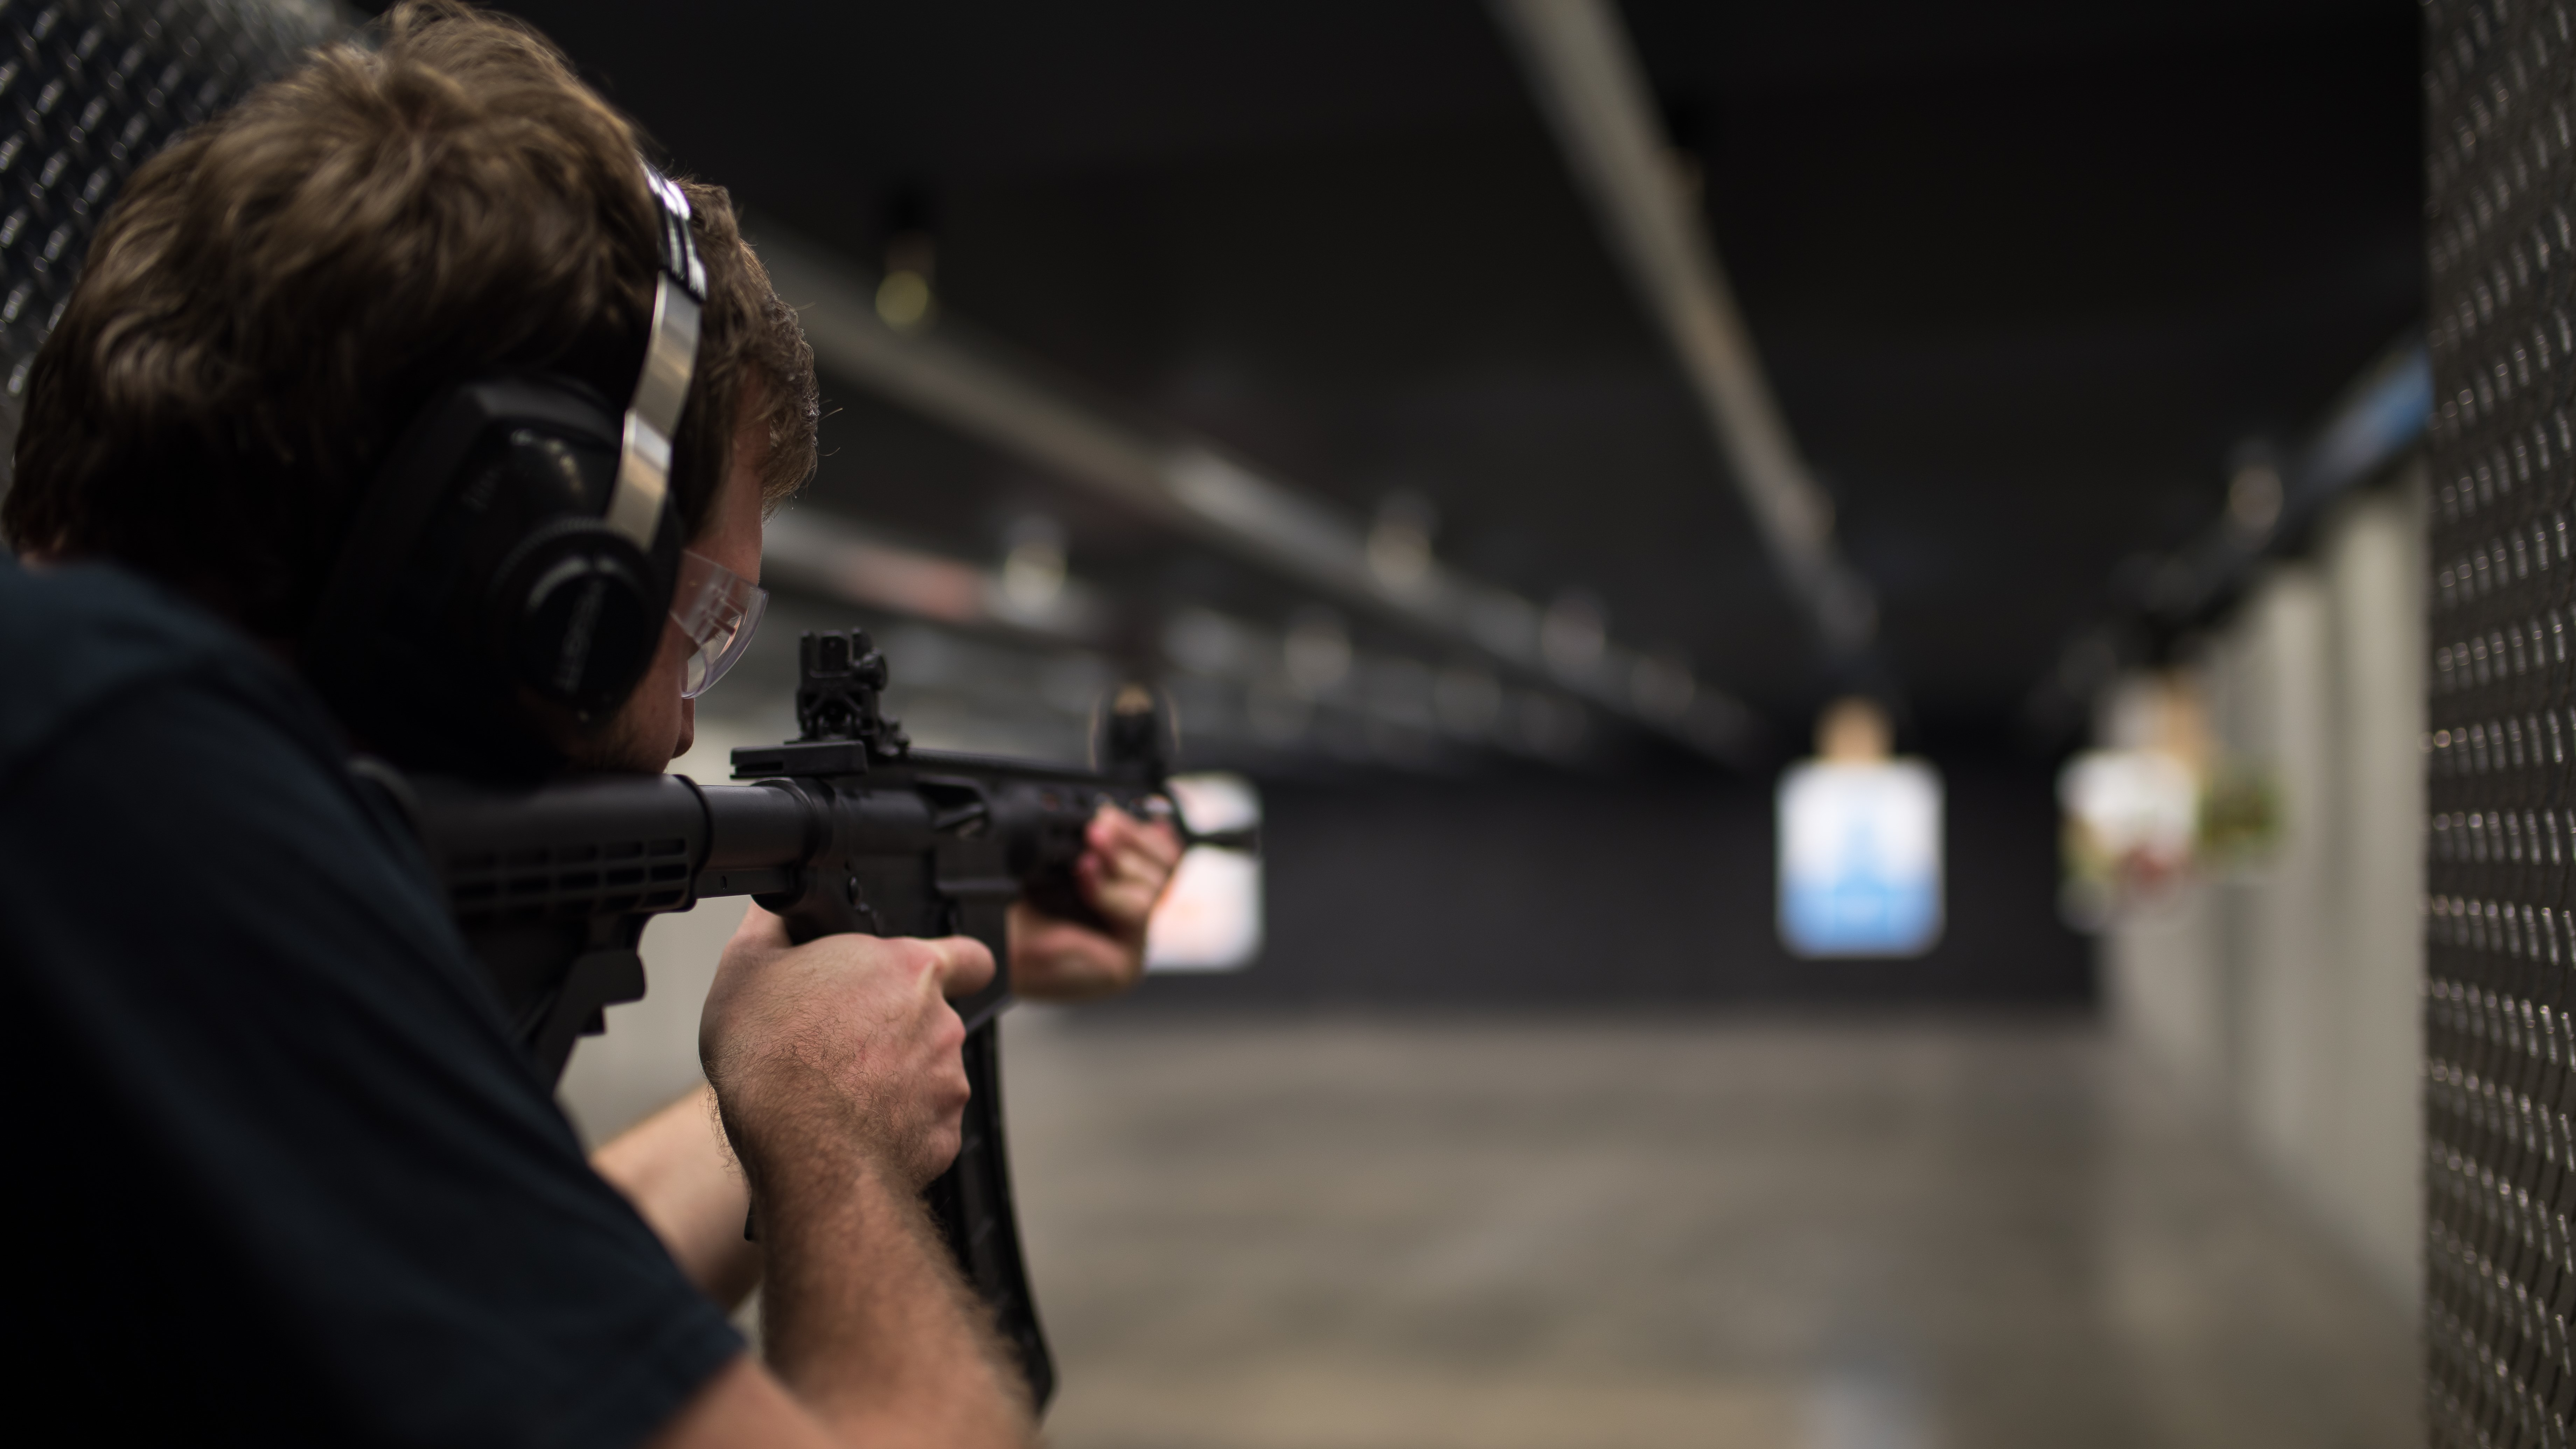 The majority of New Zealanders back the new gun laws according to a new poll. Photo / Getty Images.